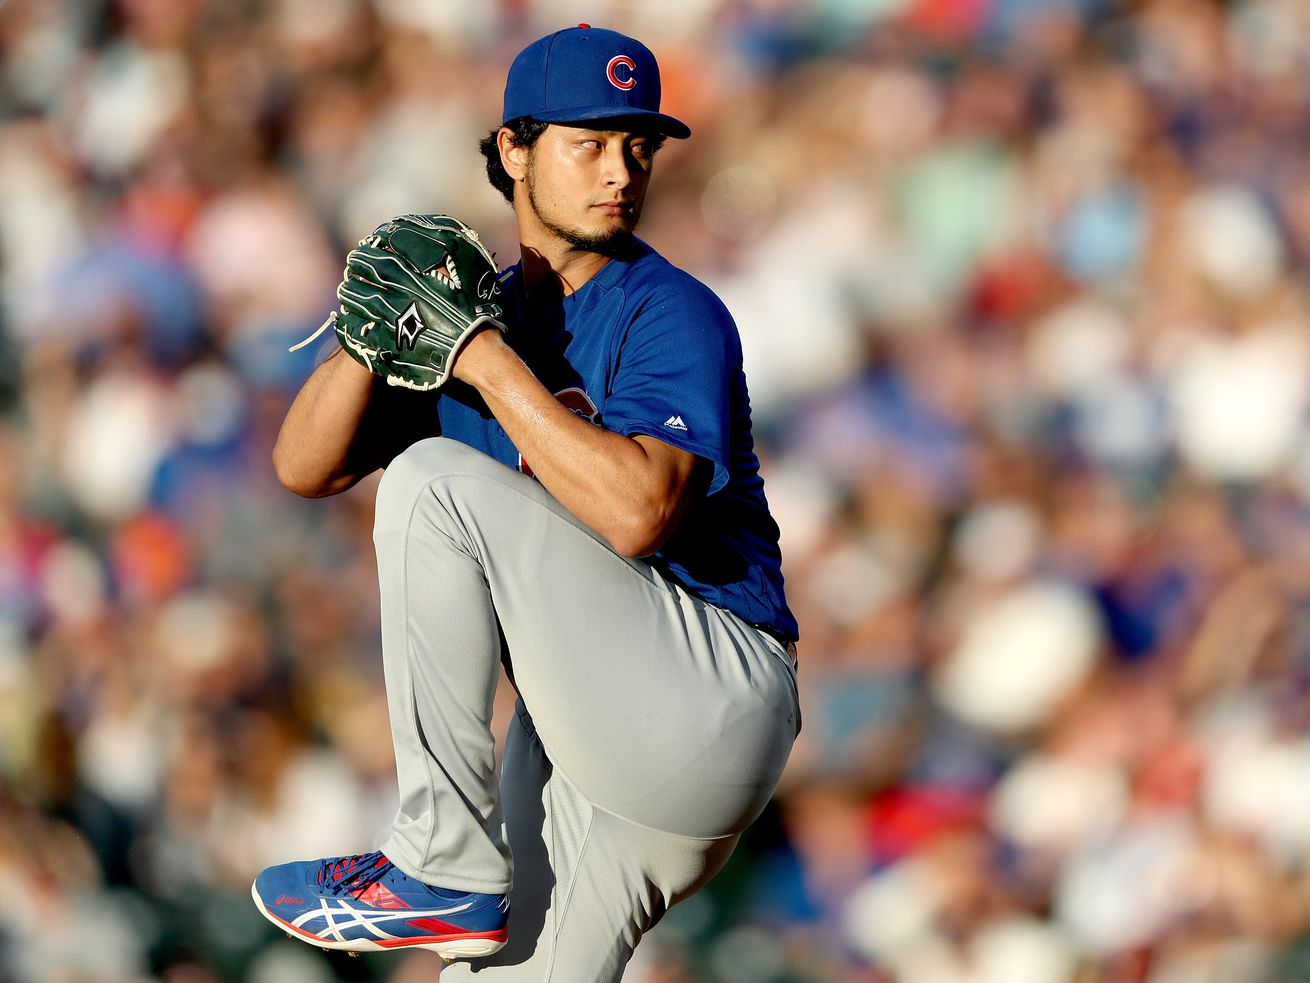 Yu Darvish during the third inning of his gem against the Dodgers Saturday night.